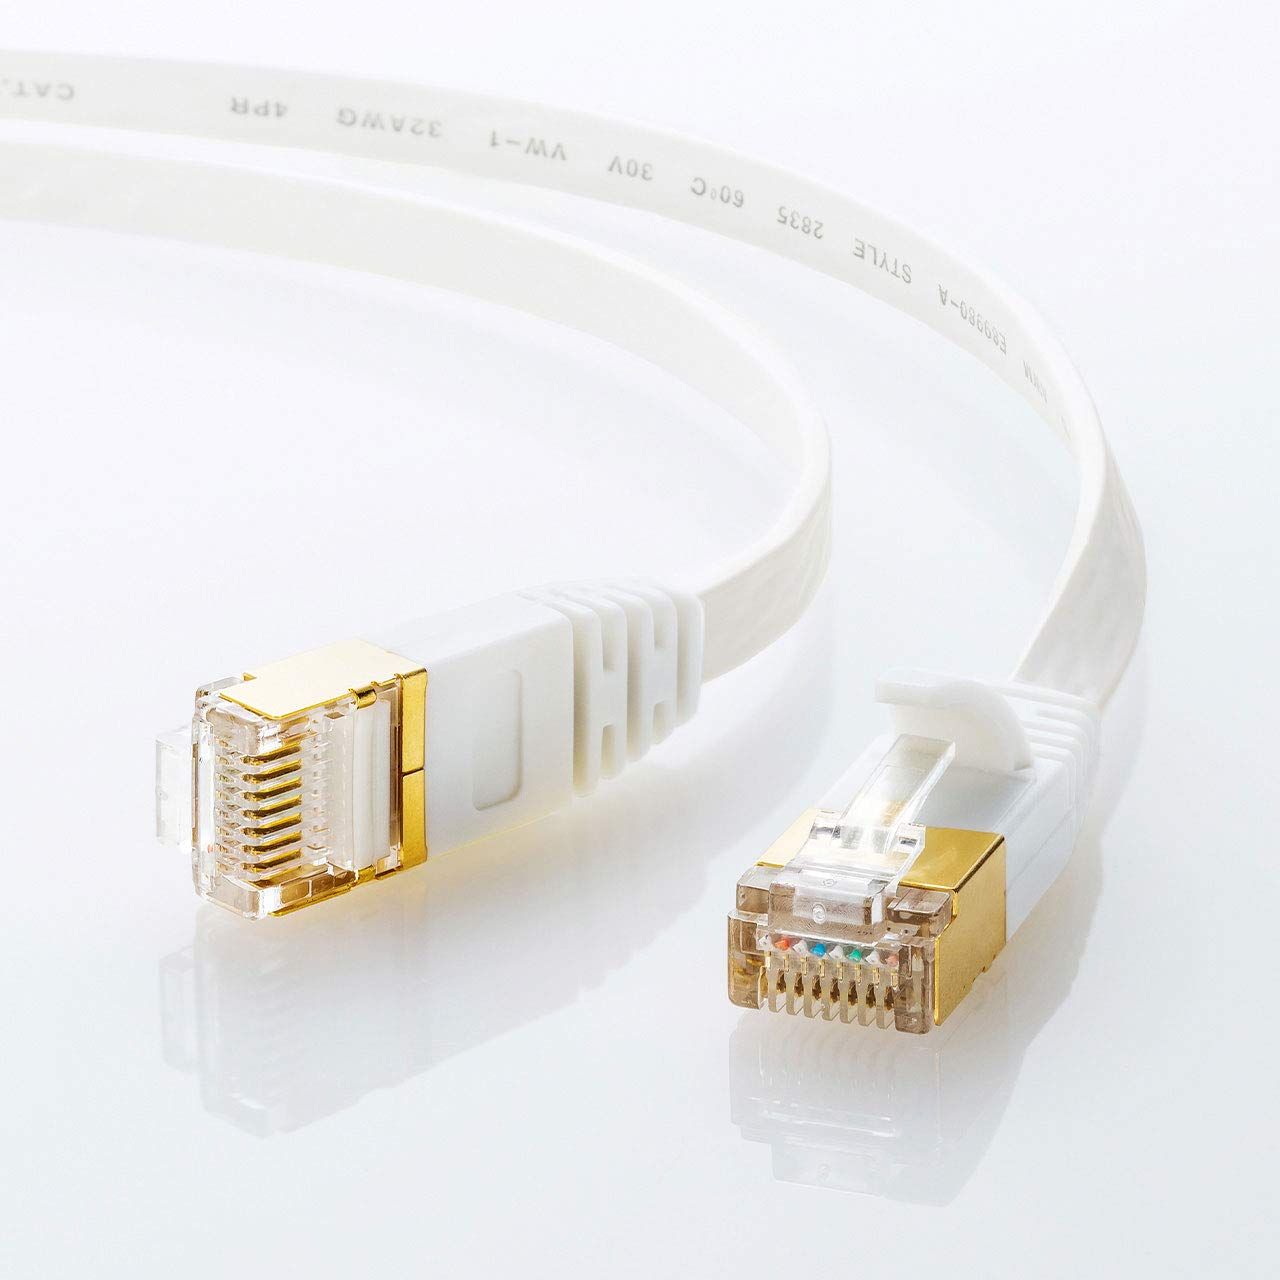 Sanwa CAT7 Ultra Flat LAN Cable Ranking TOP1 OFFicial mail order Nail 600MHz RJ45 10Gbps 0.5m